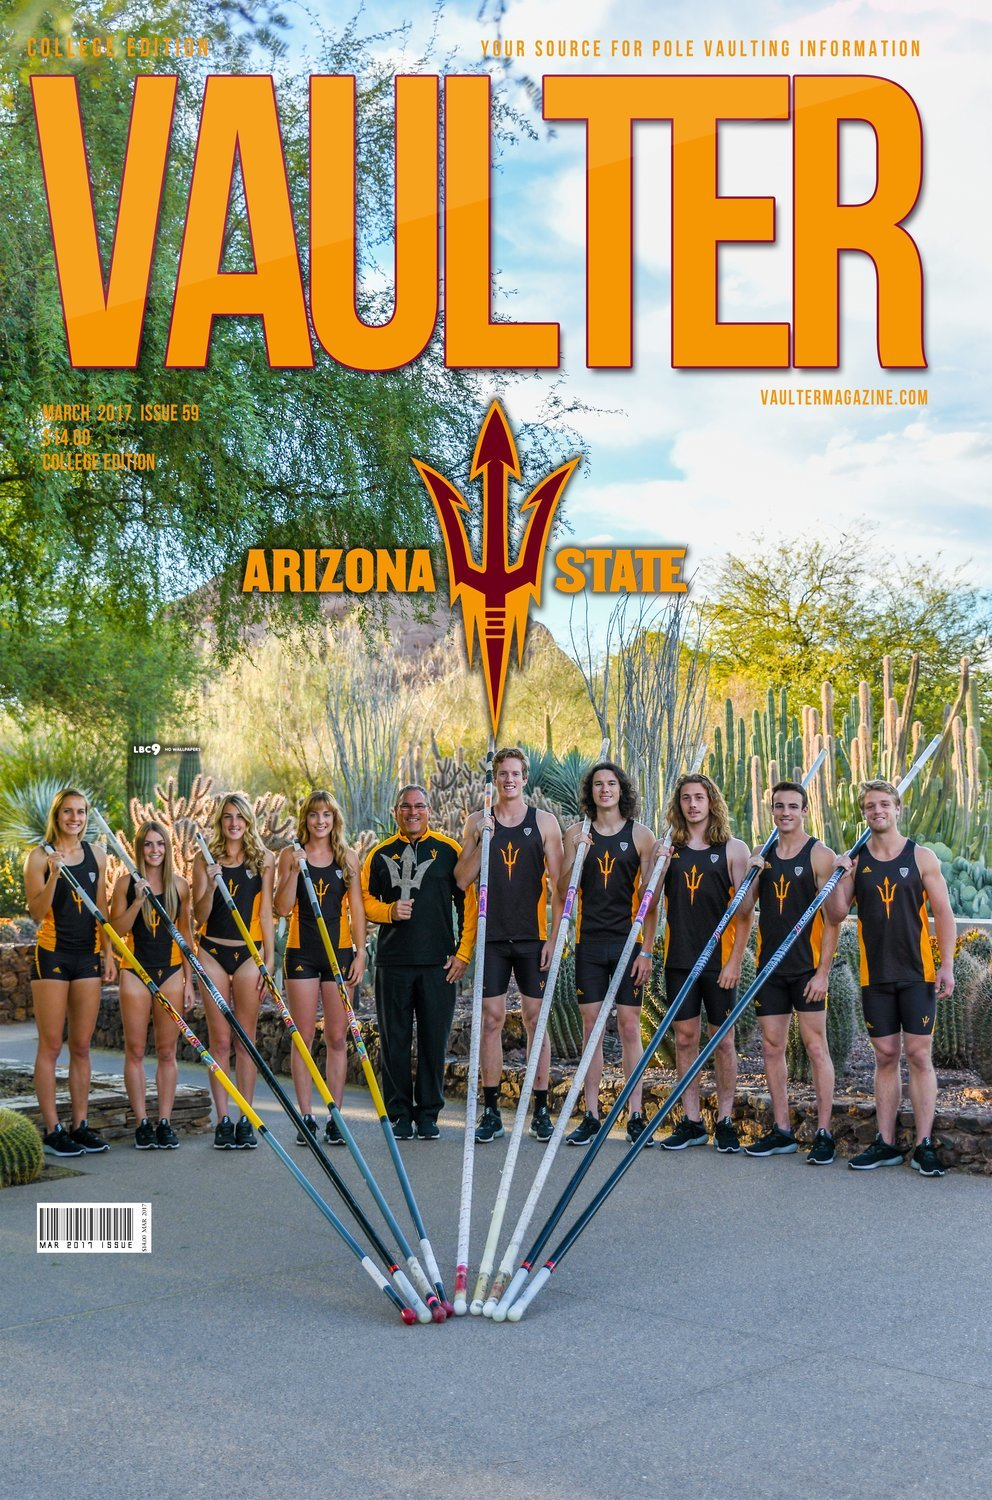 Arizona State University Cover of Vaulter Magazine USPS Only